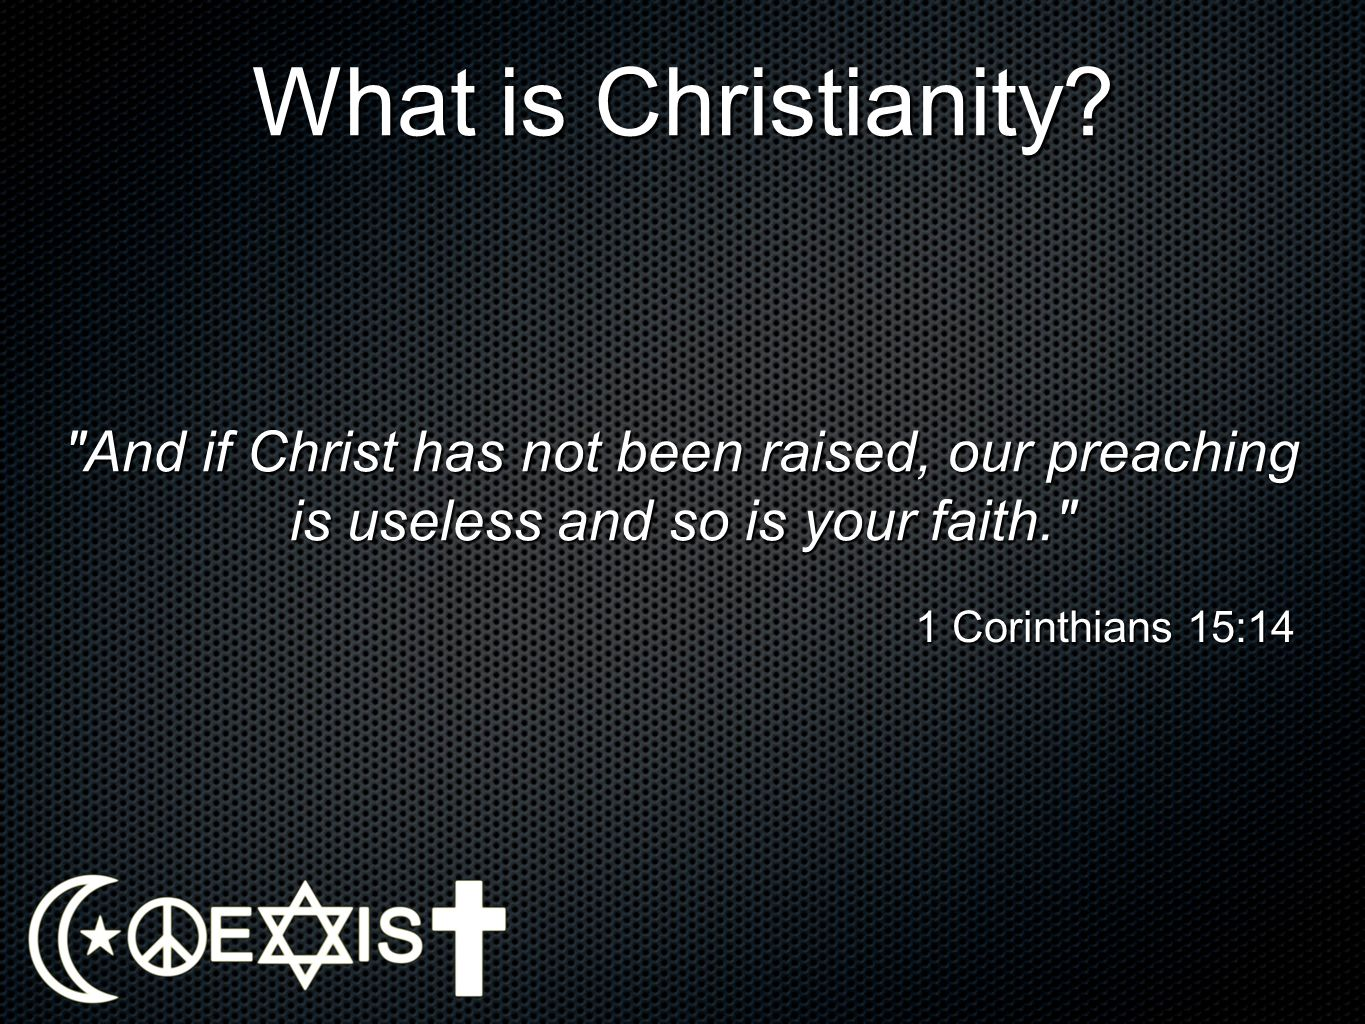 What is Christianity And if Christ has not been raised, our preaching is useless and so is your faith.